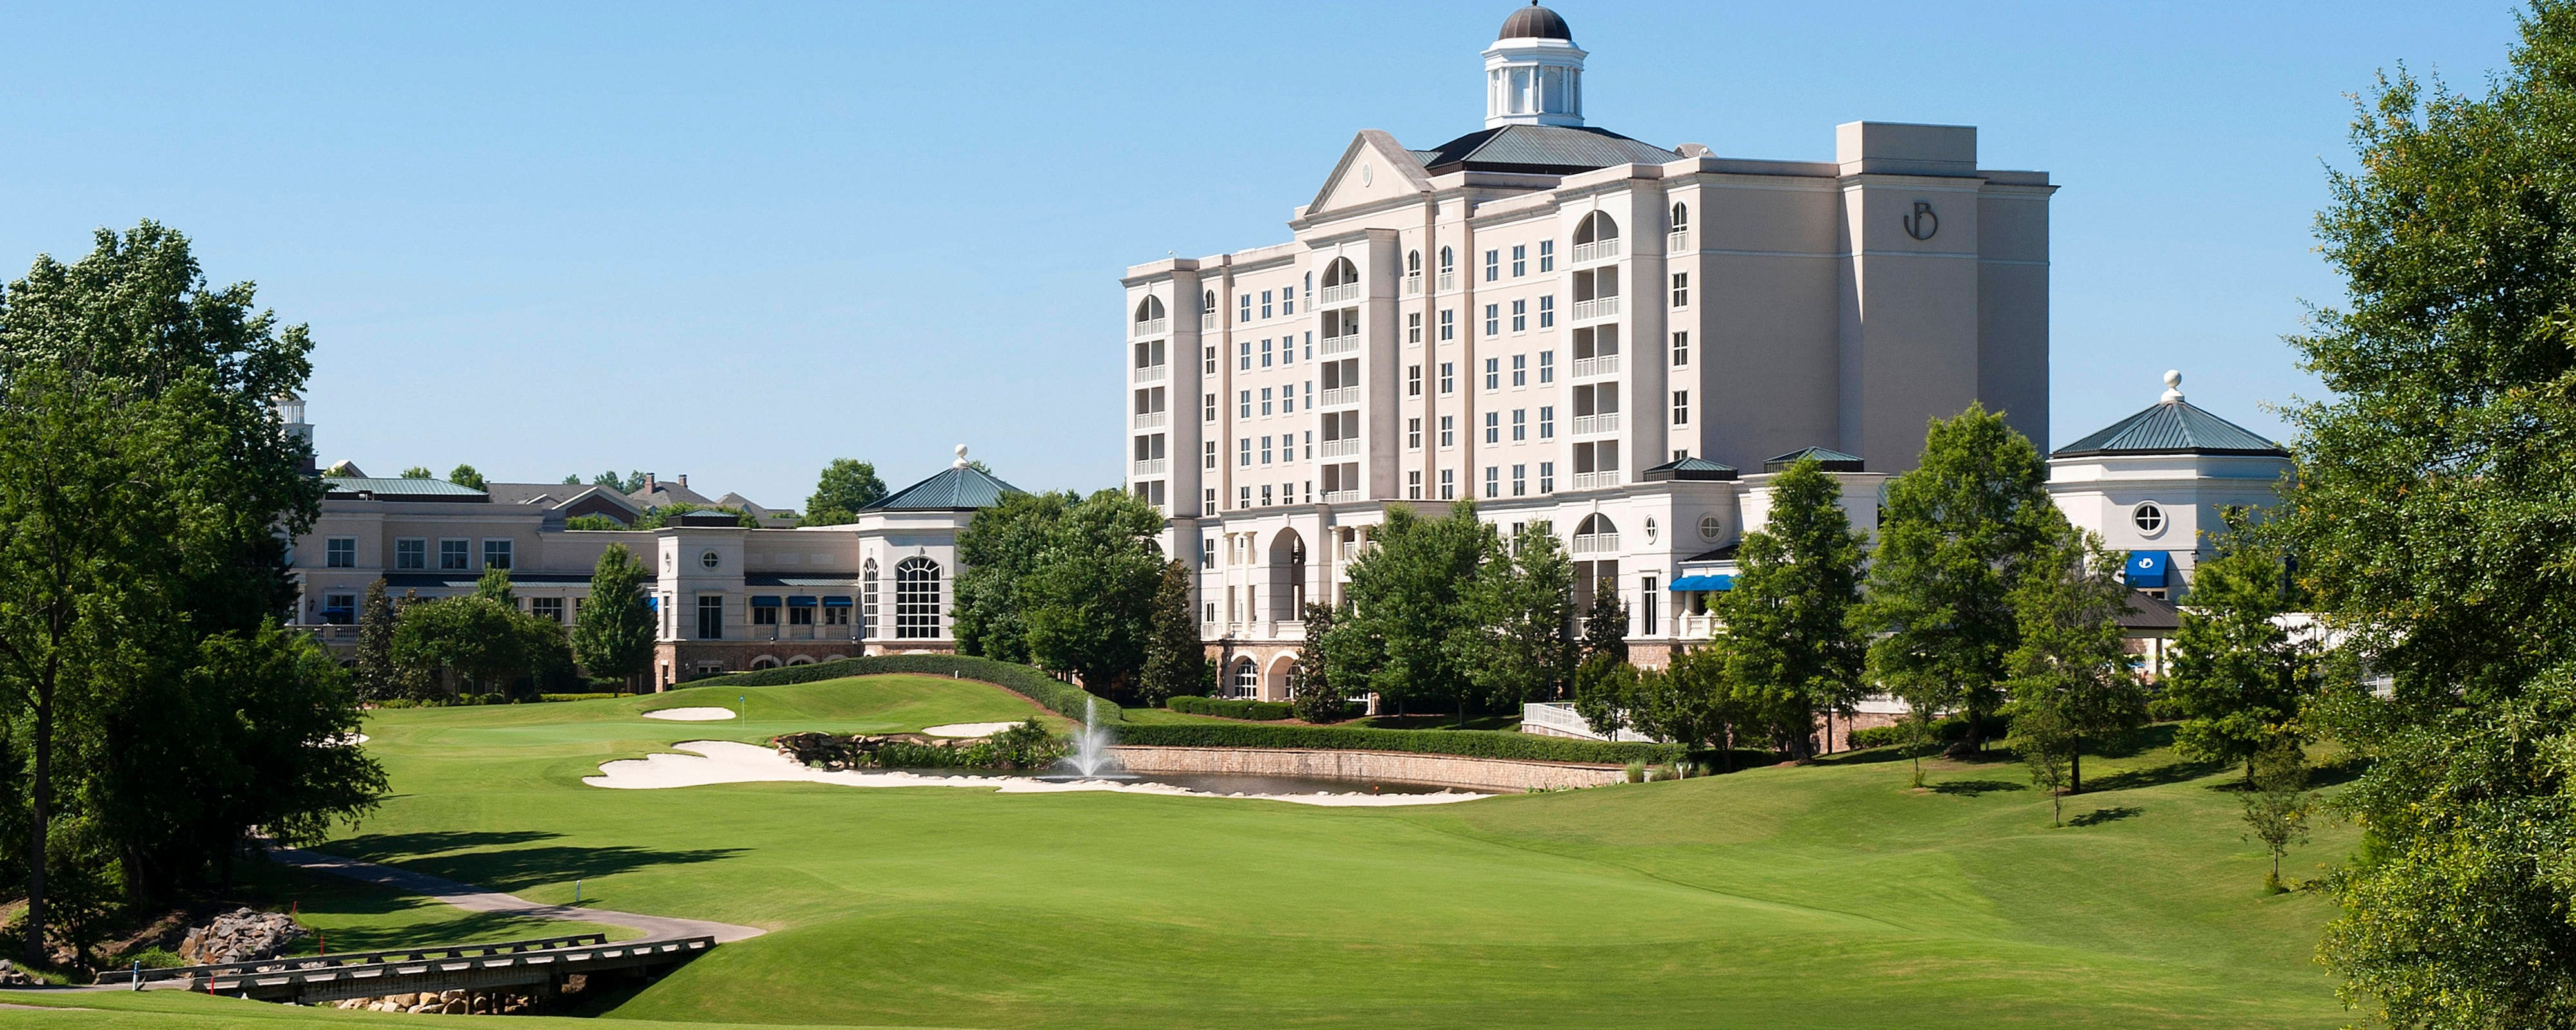 The Ballantyne Charlotte Exterior